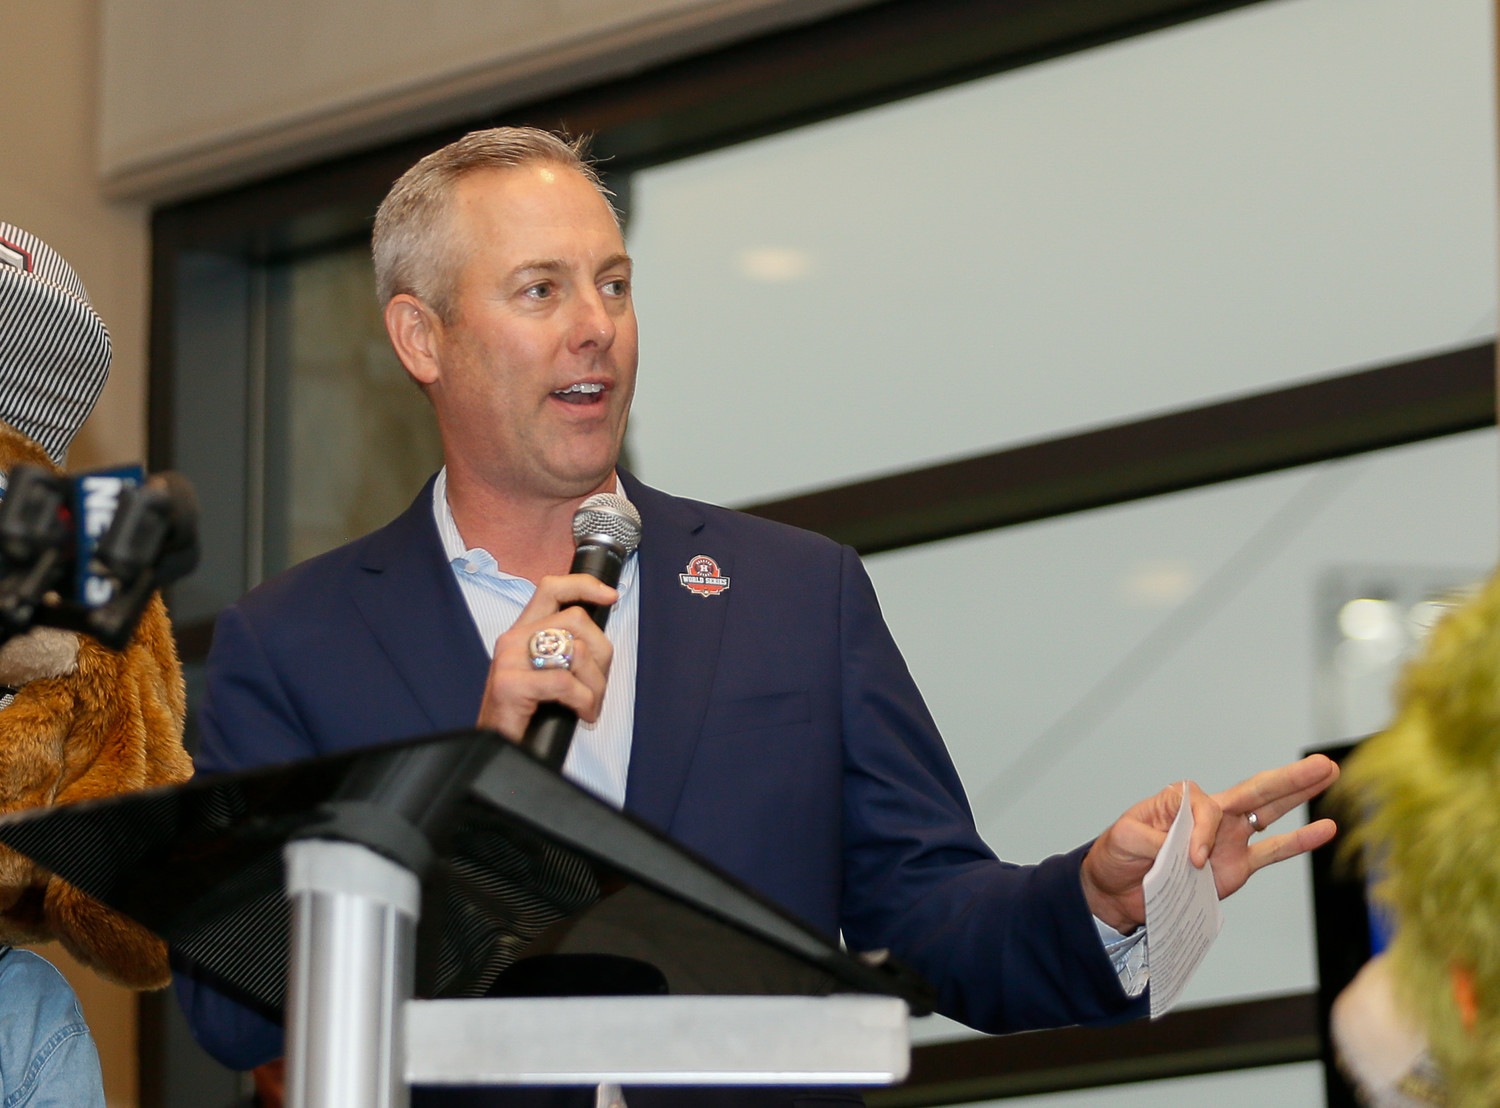 Astros President of Business Operations Reid Ryan and the Astros announced a four-year Professional Development Contract with the Round Rock Express on Thursday evening.